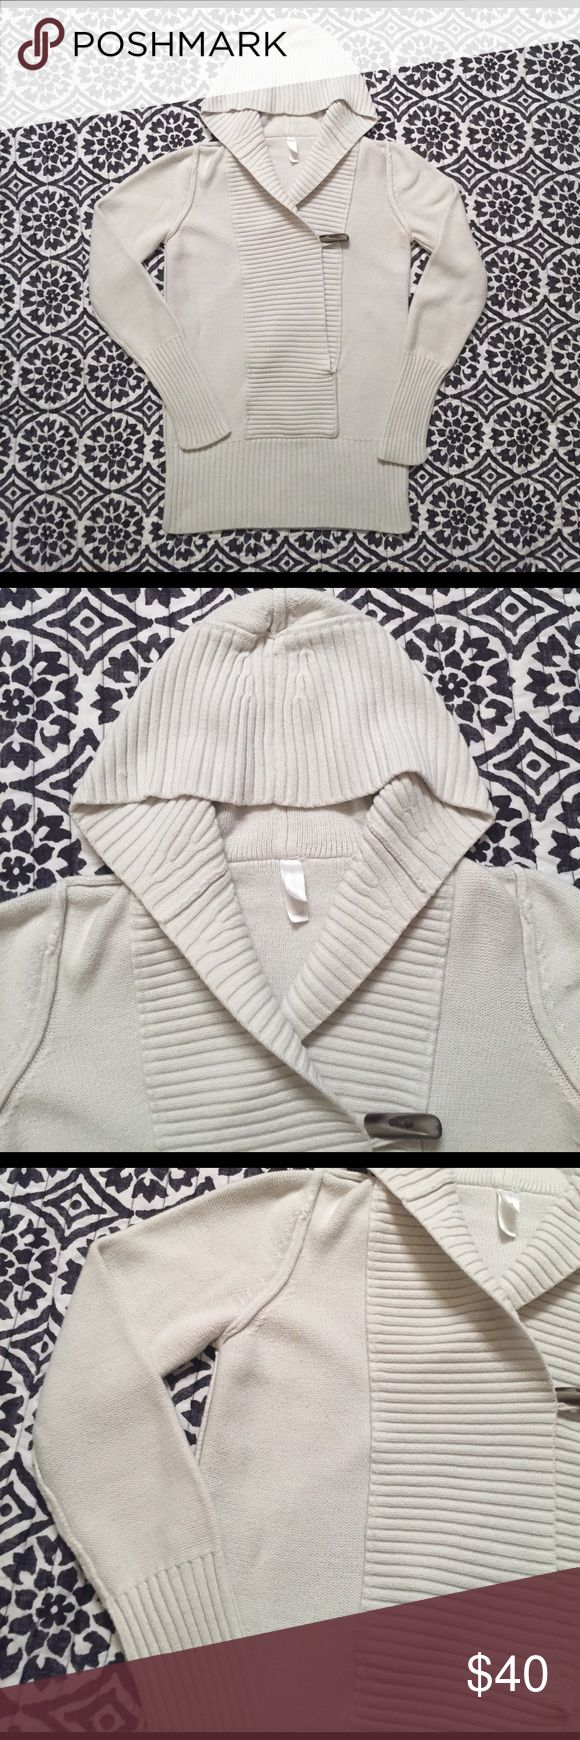 GAP Body sweater with toggle detail Great sweater I always got lots of complements on it and people asking where I got it from. A few mild pills here and there but not noticeable. Off white or ivory.  ❌ no trades ❌ no holds ❌ no lowballs  ✅ if it's listed it's available ⬆️ above will be ignored🙅🏻 GAP Sweaters V-Necks